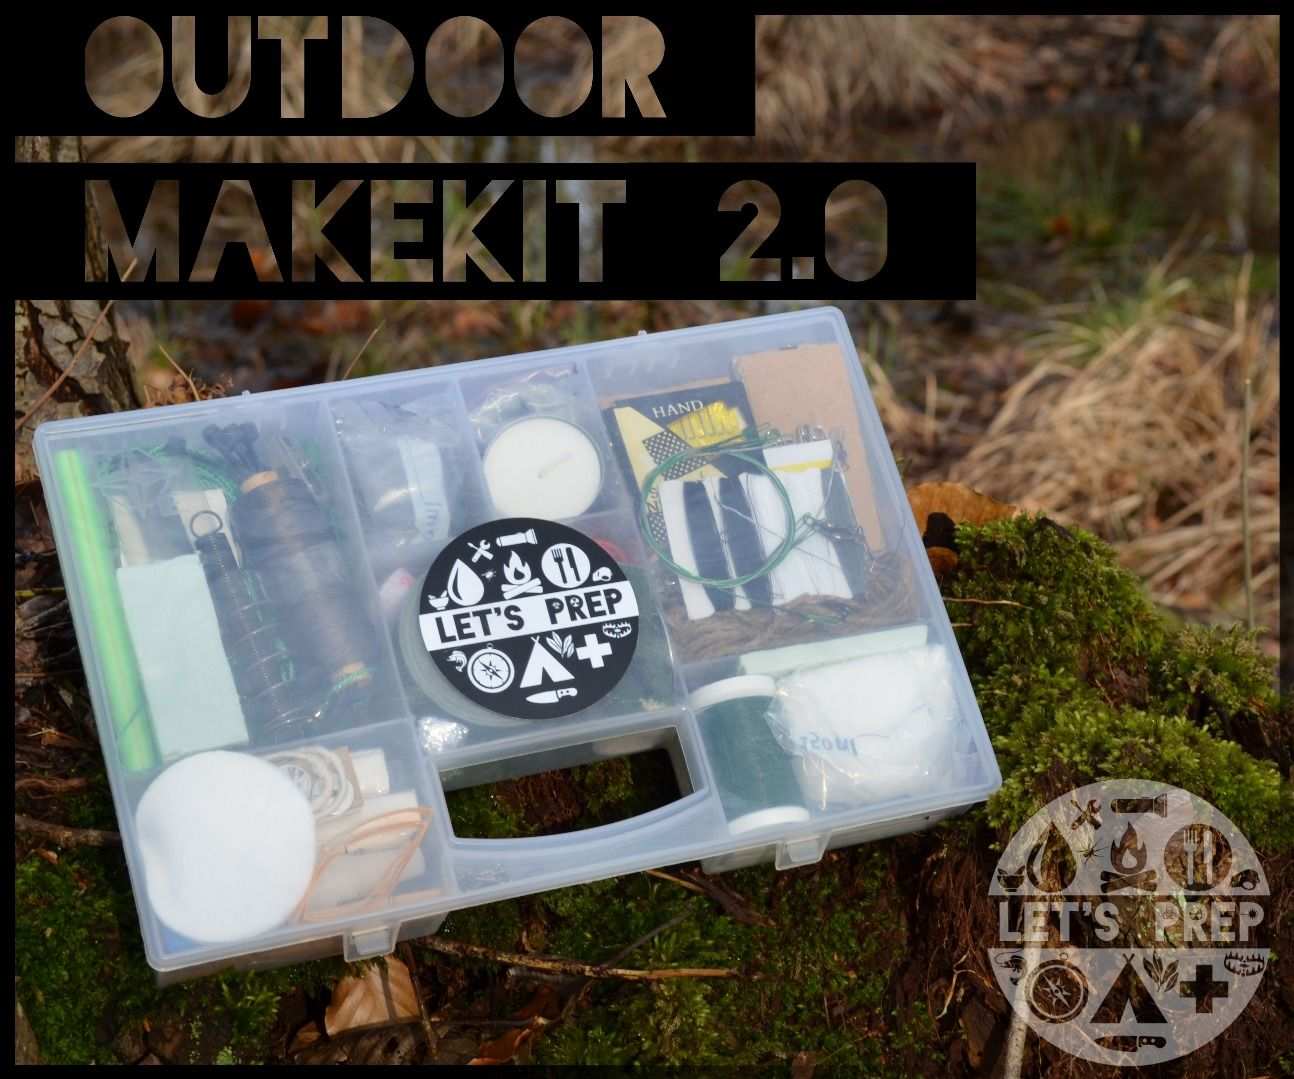 Outdoor MakeKit v2.0